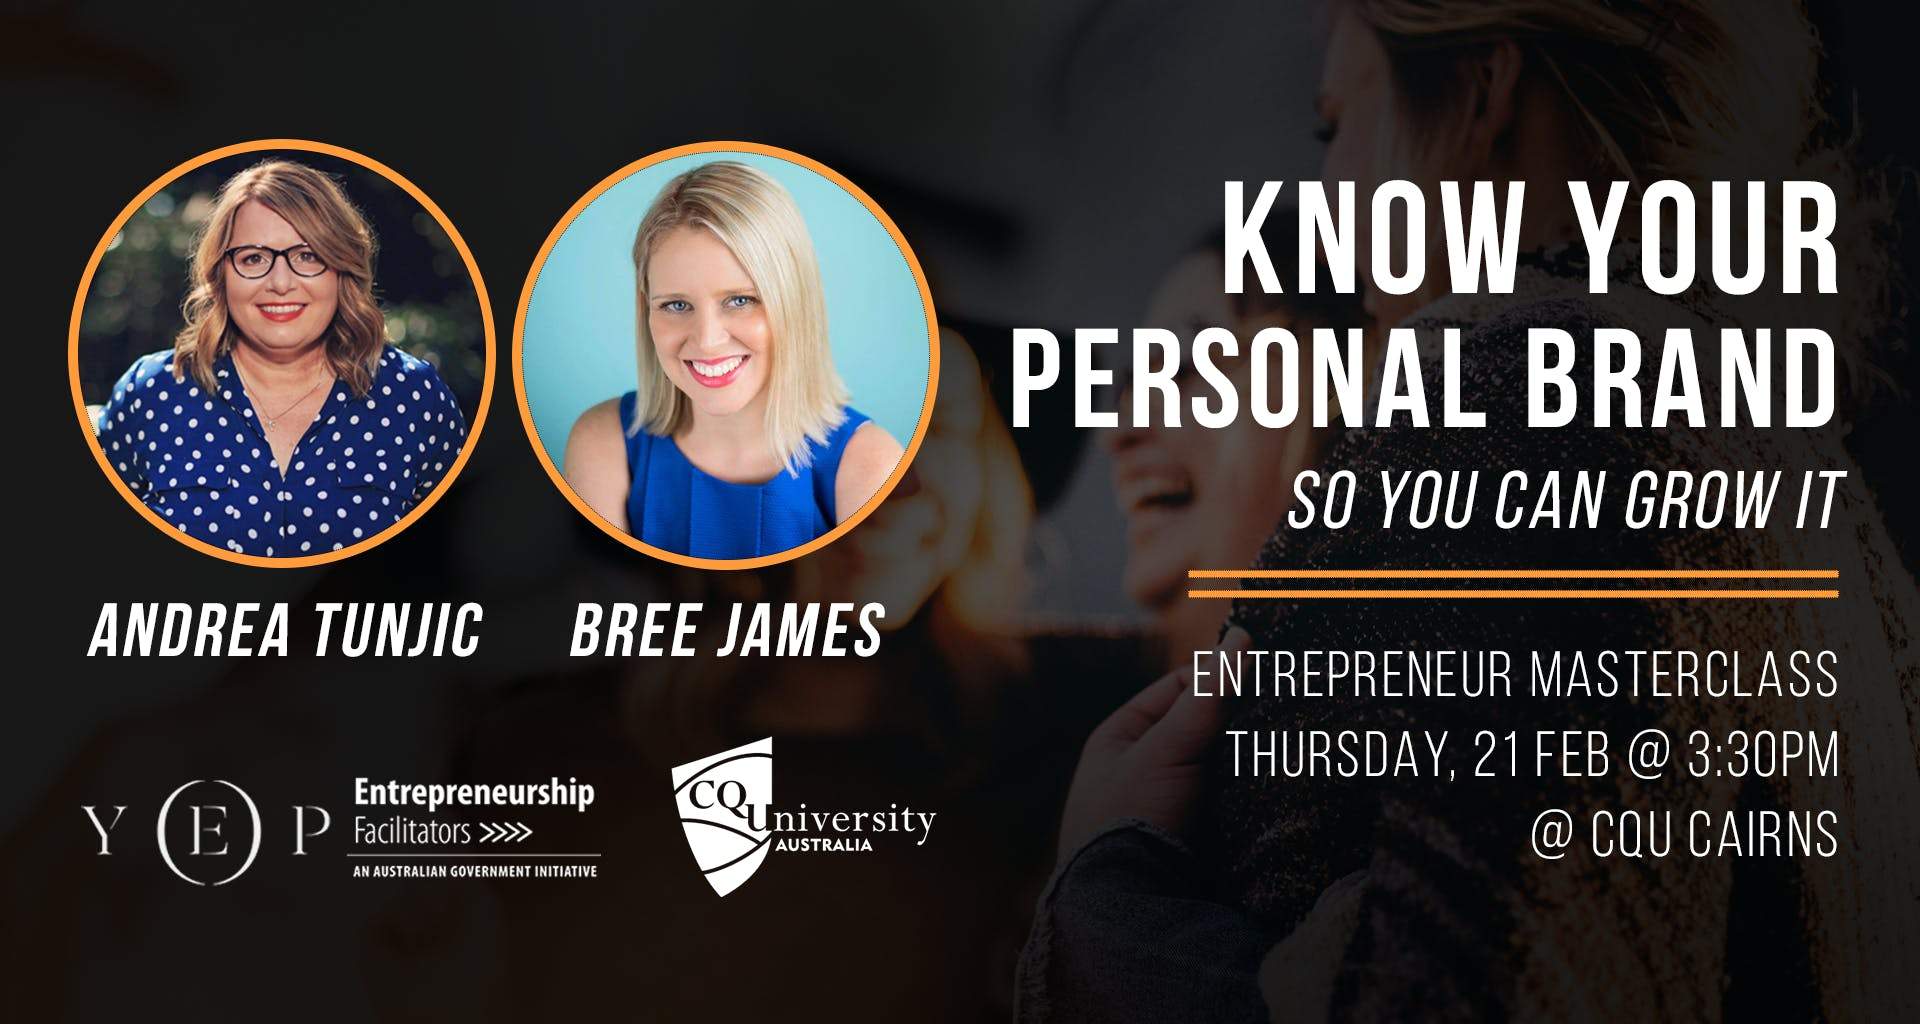 Know Your Personal Brand Masterclass with And